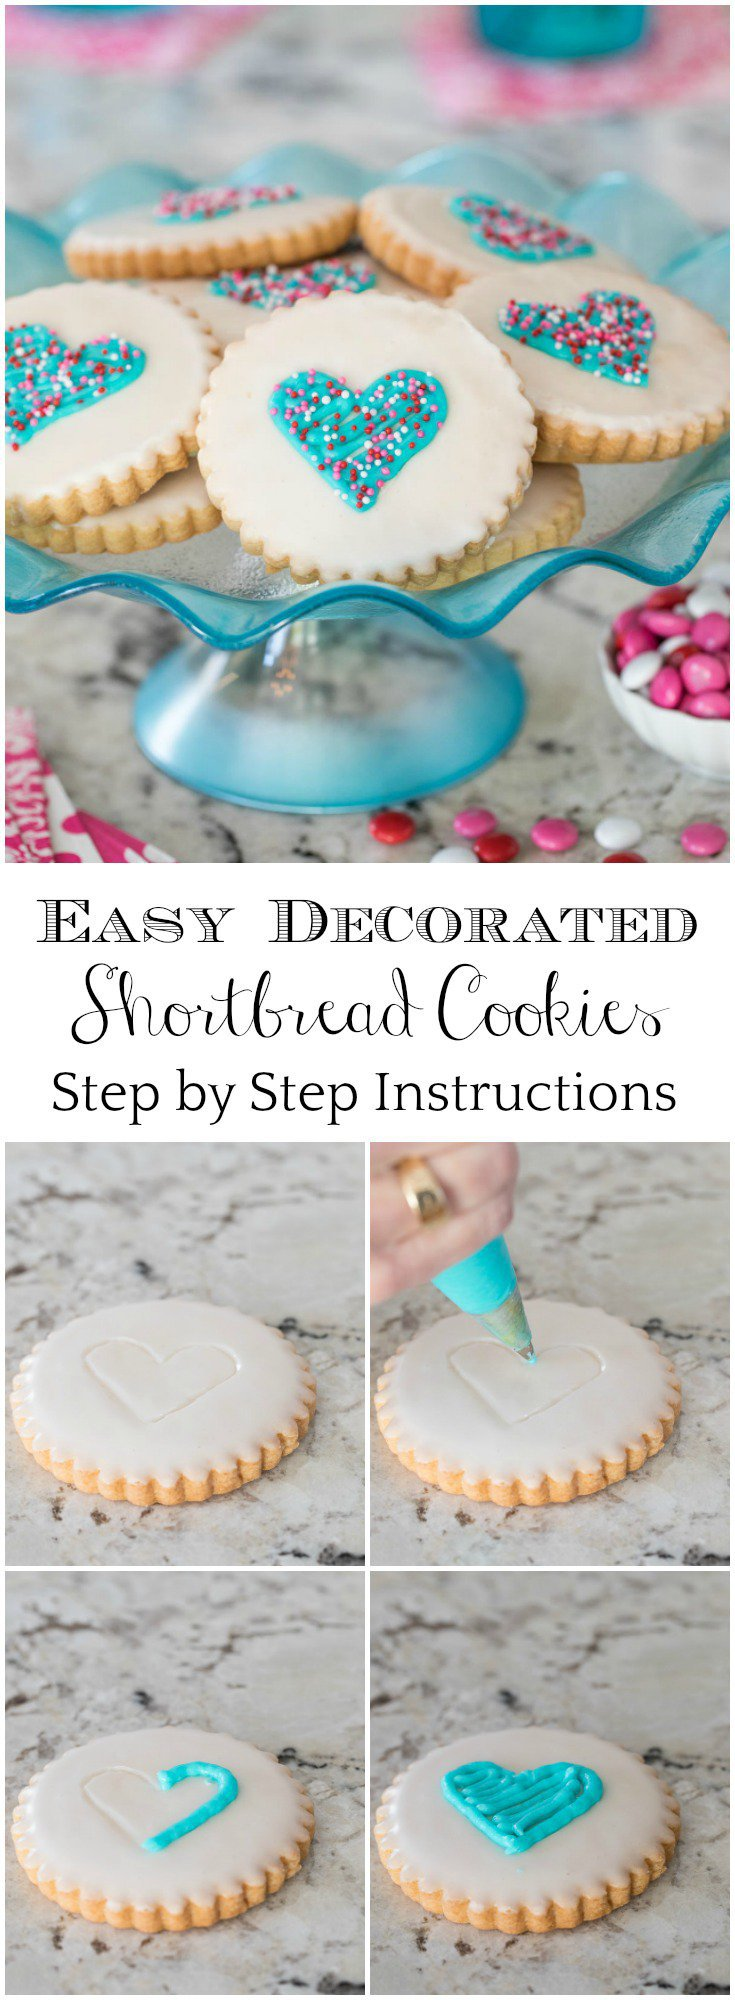 These delicious, Easy Decorated Shortbread Cookies are showstoppers - perfect for weddings, Valentines or just to say I love you!